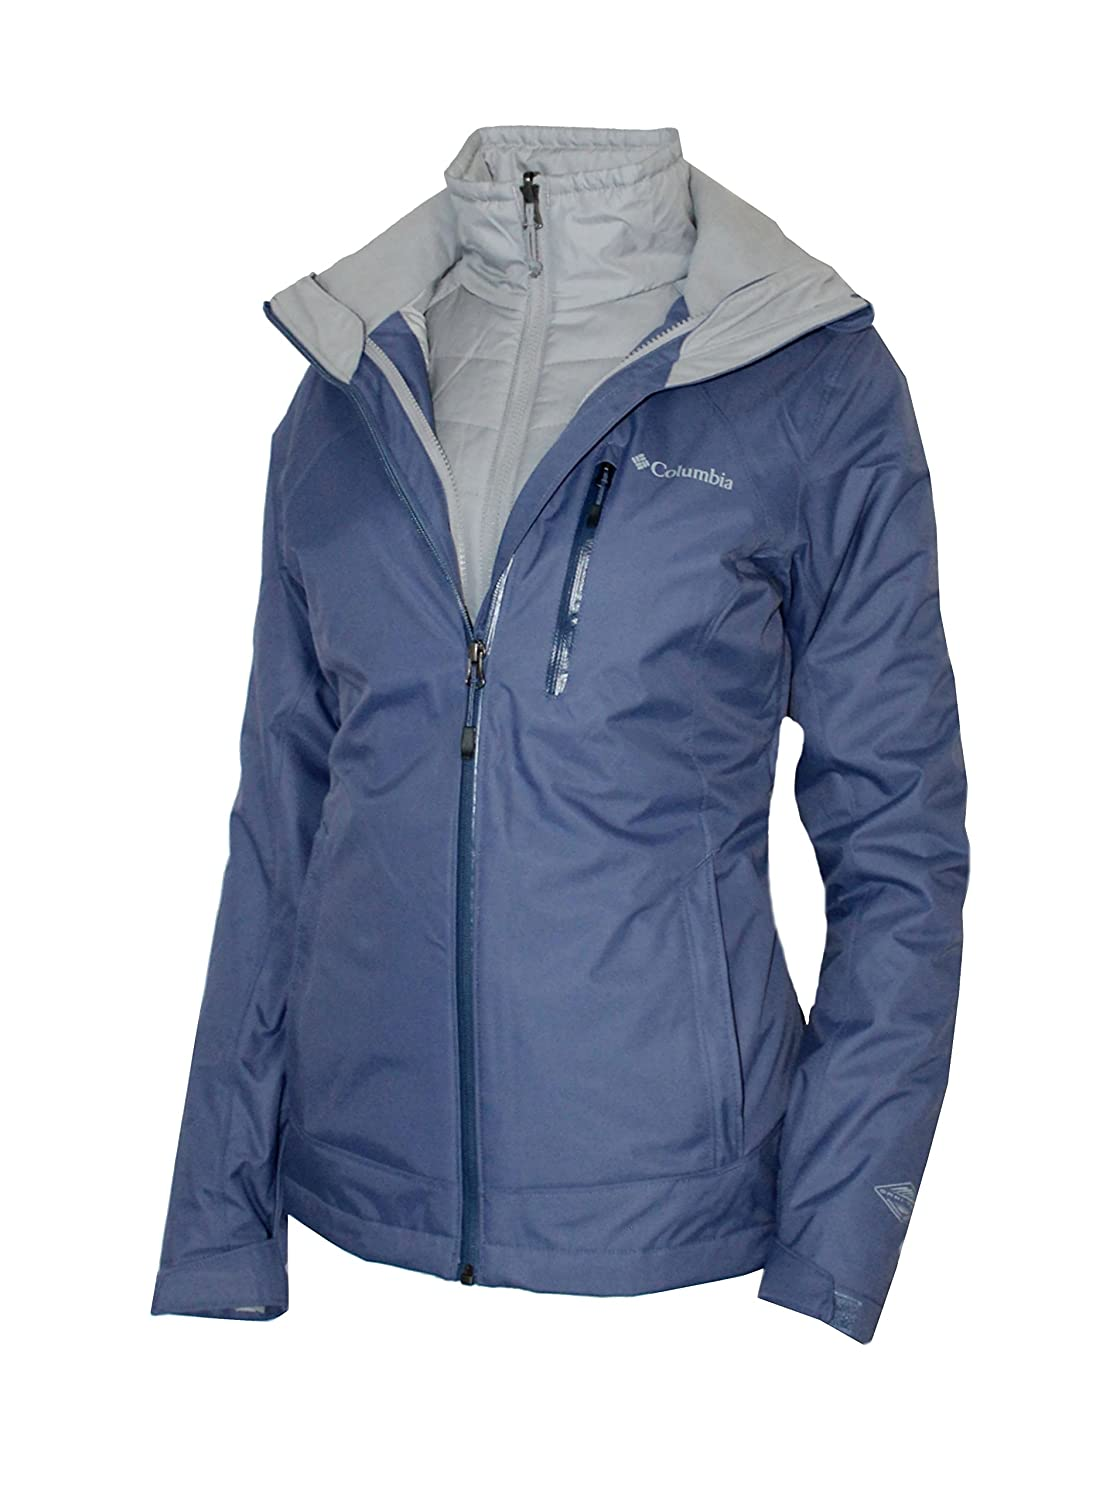 00e2664a430e Top 10 wholesale 3 In 1 Waterproof Jacket - Chinabrands.com